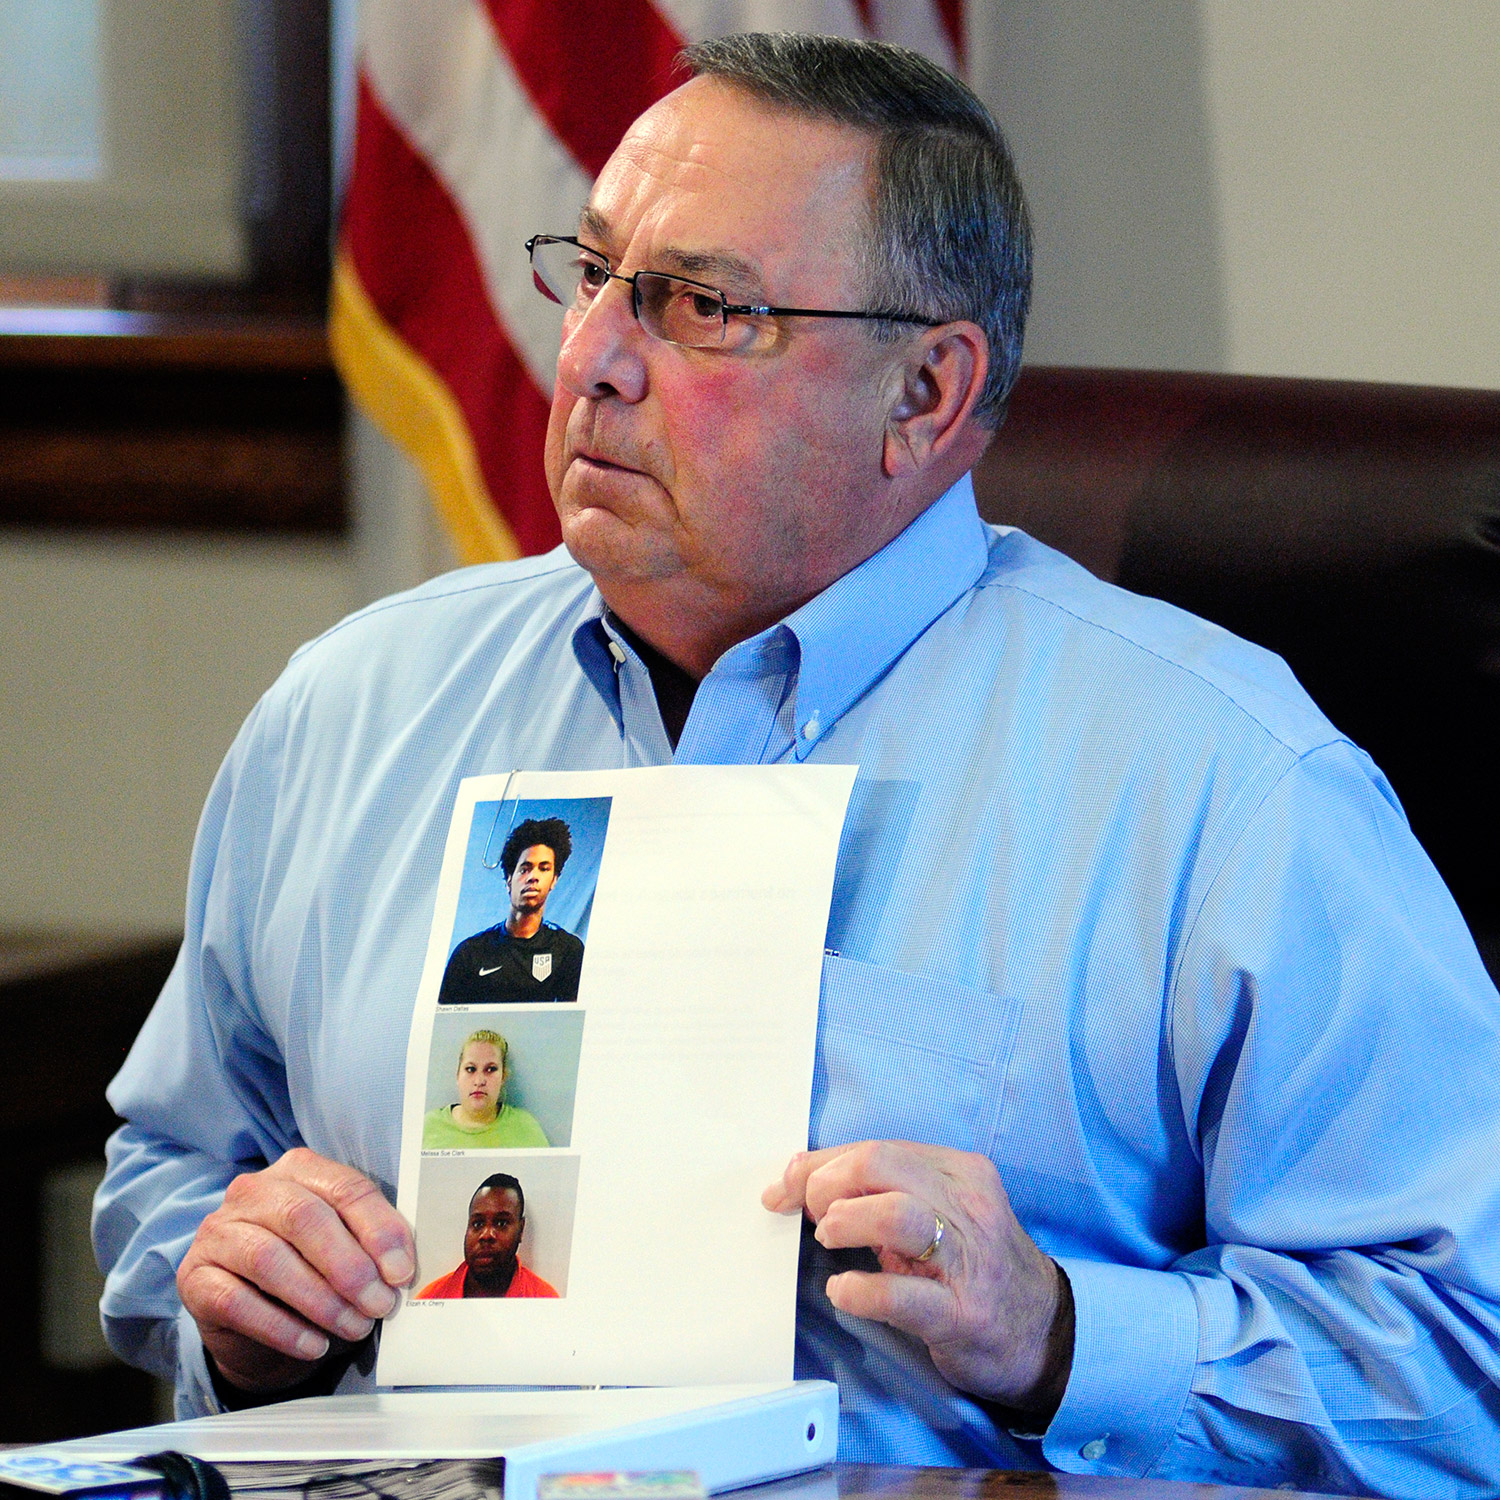 Gov. Paul LePage holds up booking mug shots from a three-ring binder of news releases and articles about drug arrests during a meeting with reporters on Friday in the State House Cabinet room in Augusta.